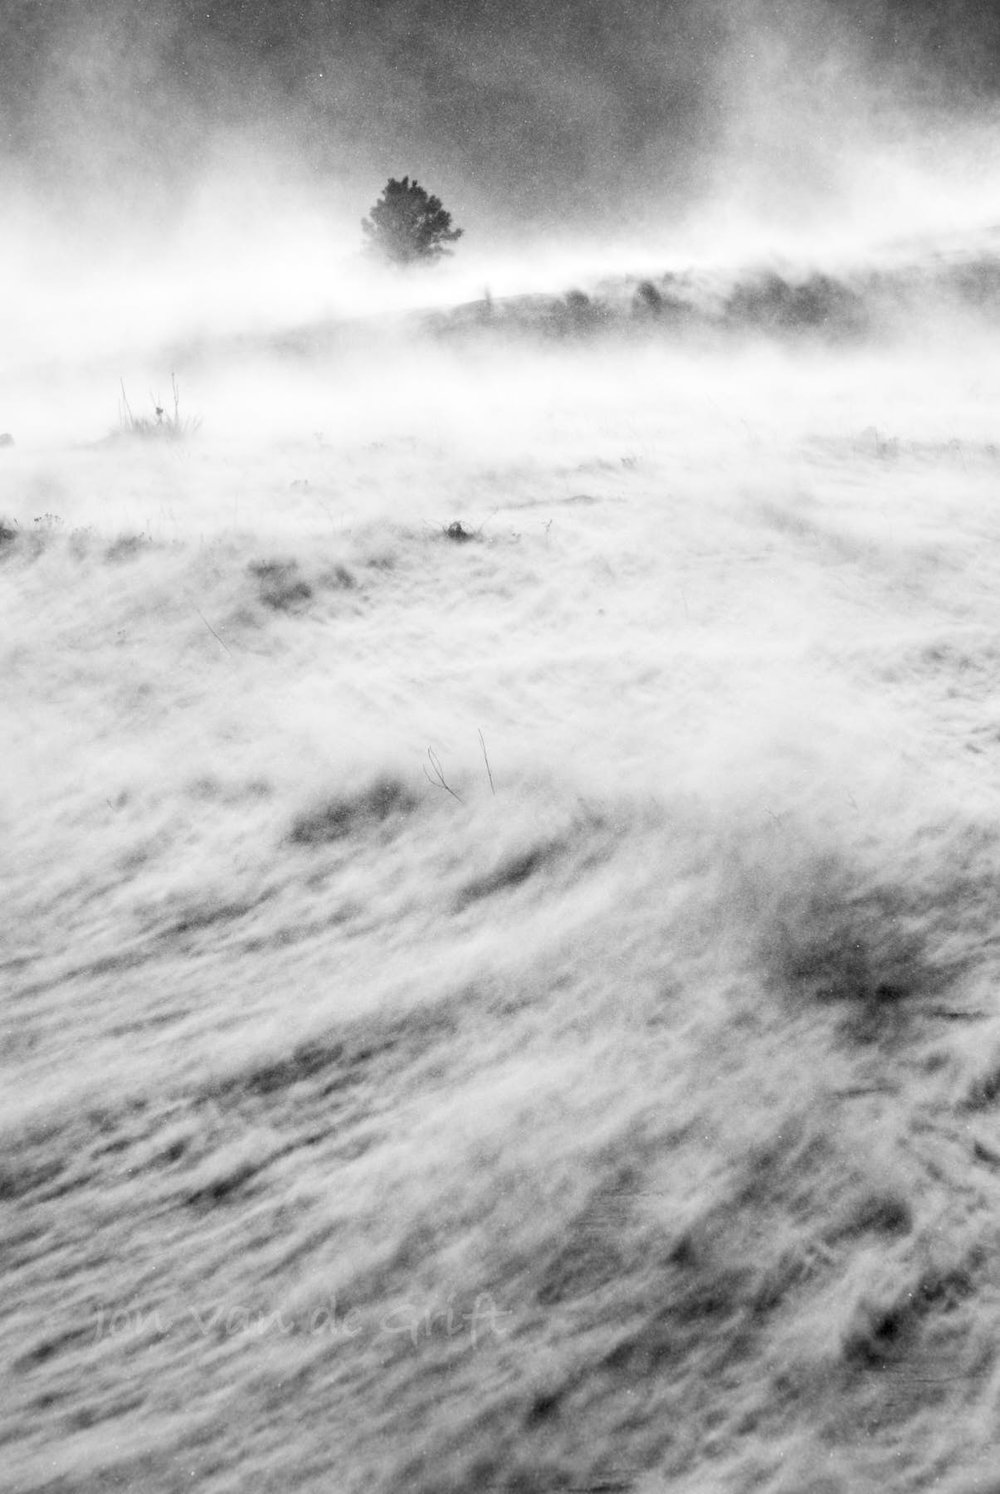 Monochrome photograph of snow in a wind storm in winter.